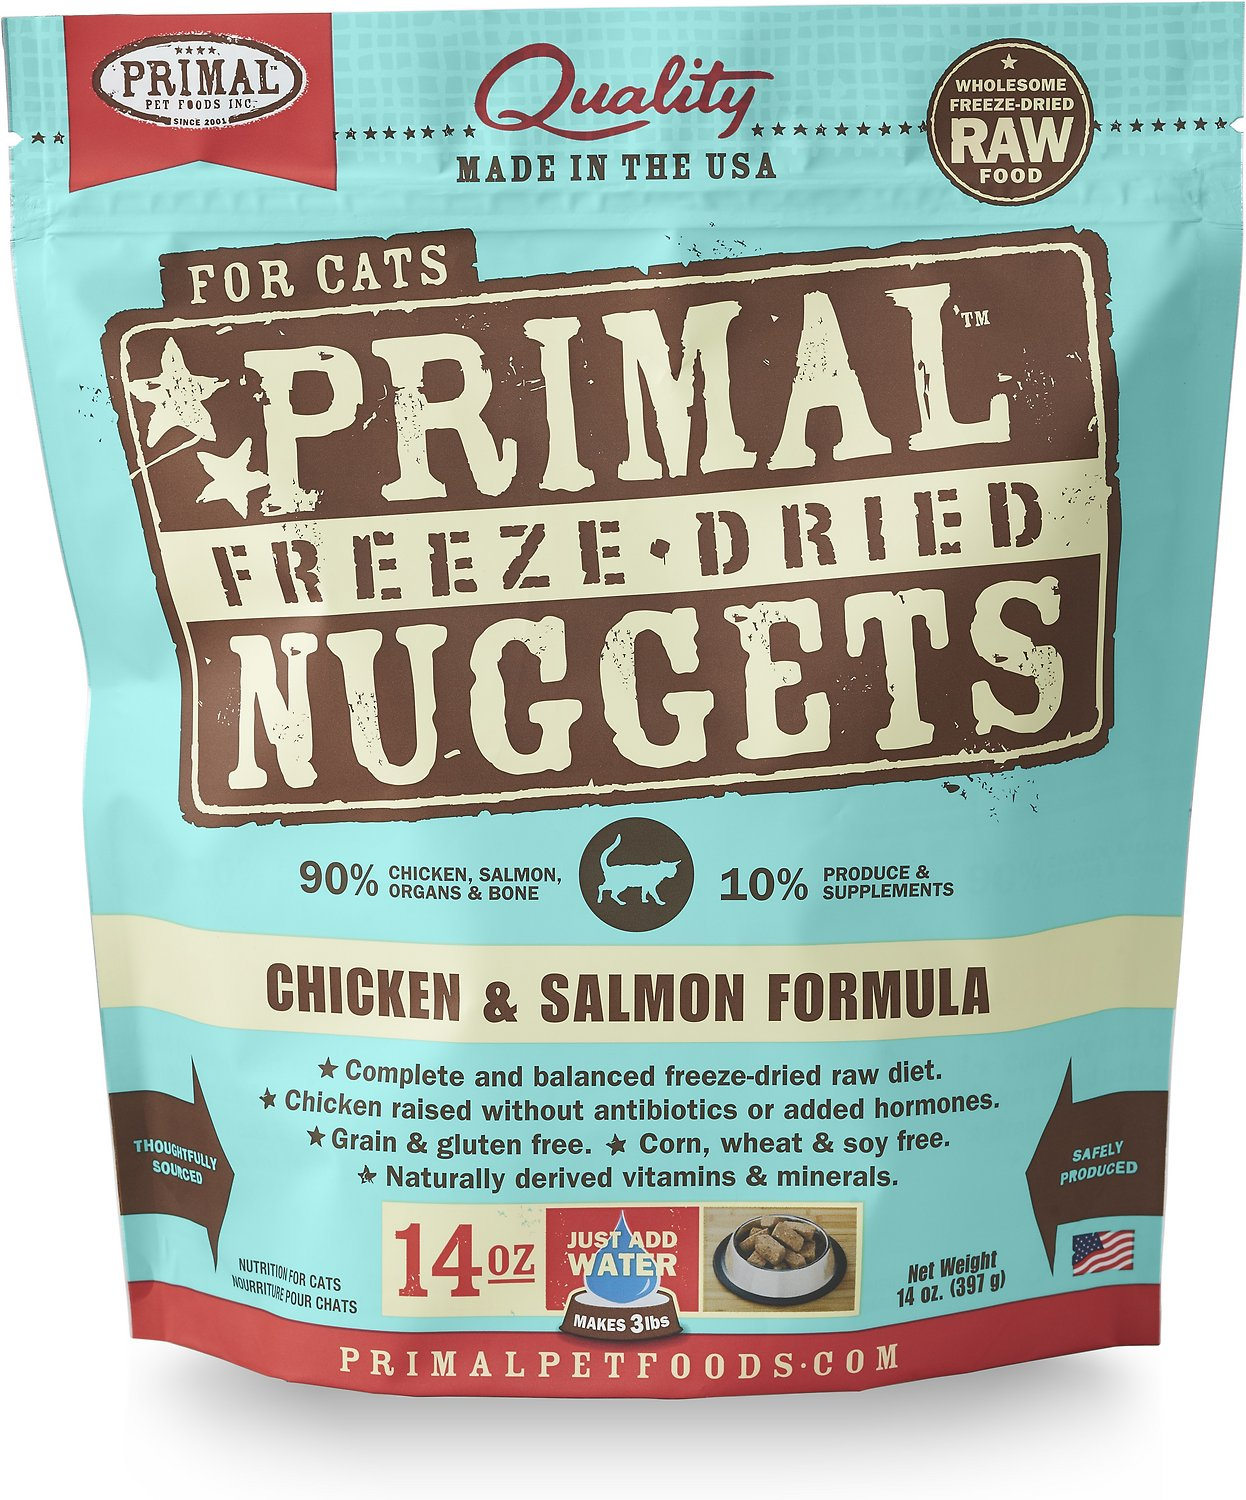 Primal Chicken & Salmon Formula Nuggets Grain-Free Raw Freeze-Dried Cat Food Image